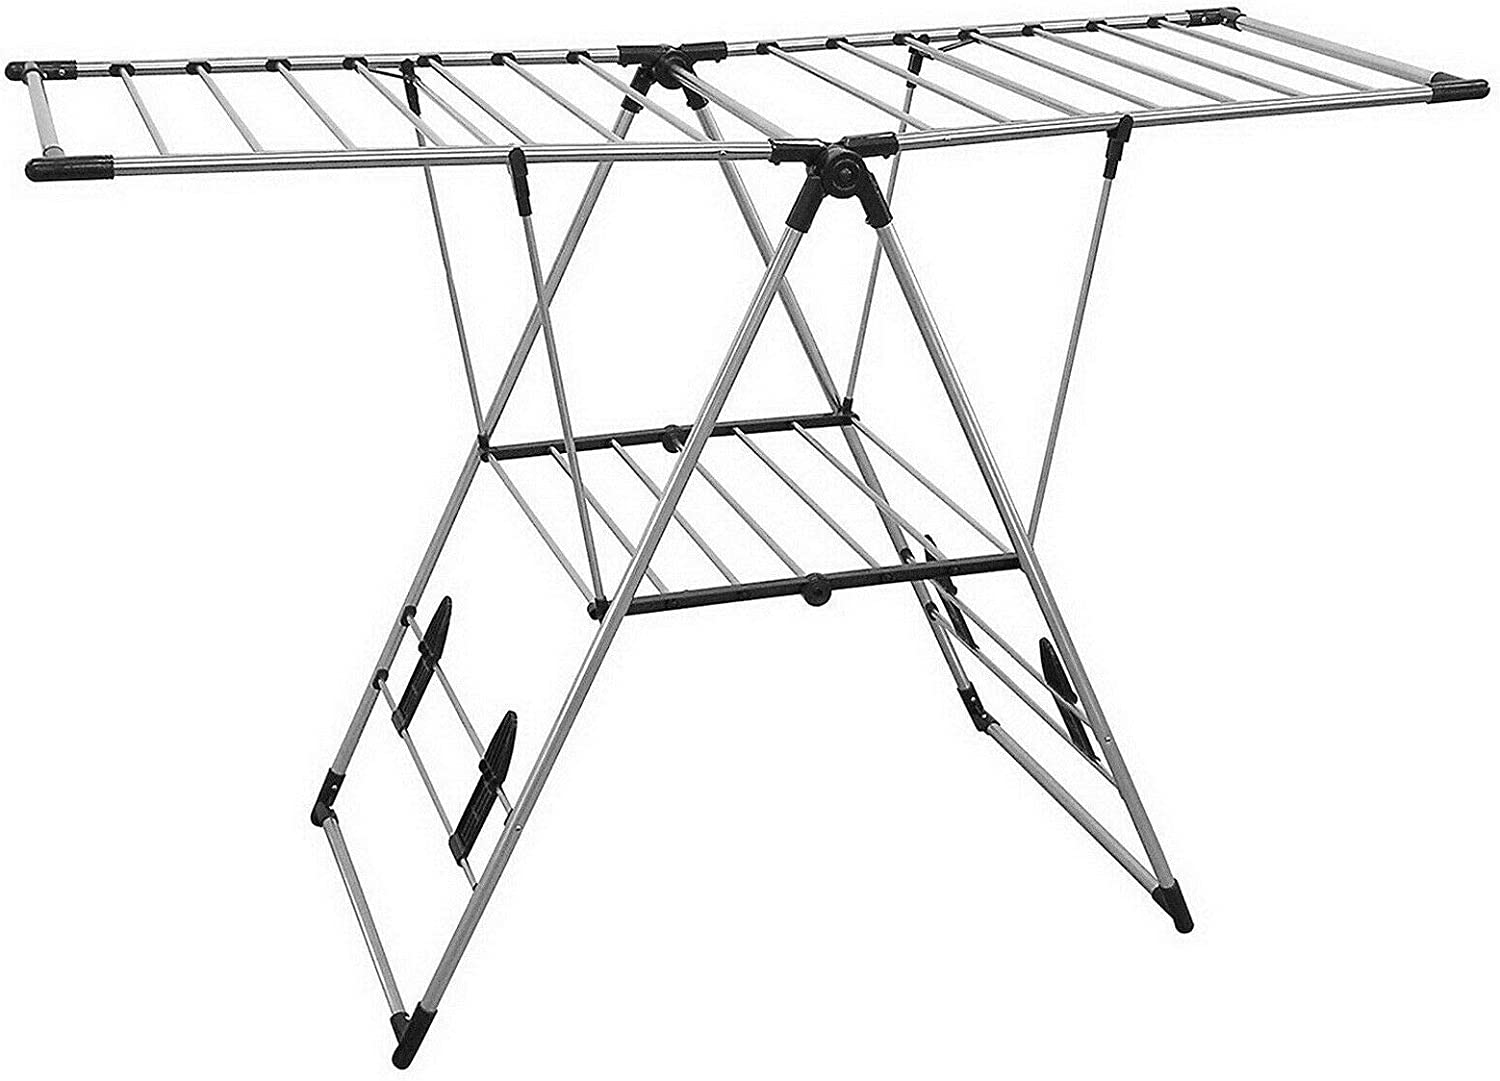 Large Manufacturer regenerated product Stainless Steel Laundry Clothes In Drying Rack Clothesline 25% OFF